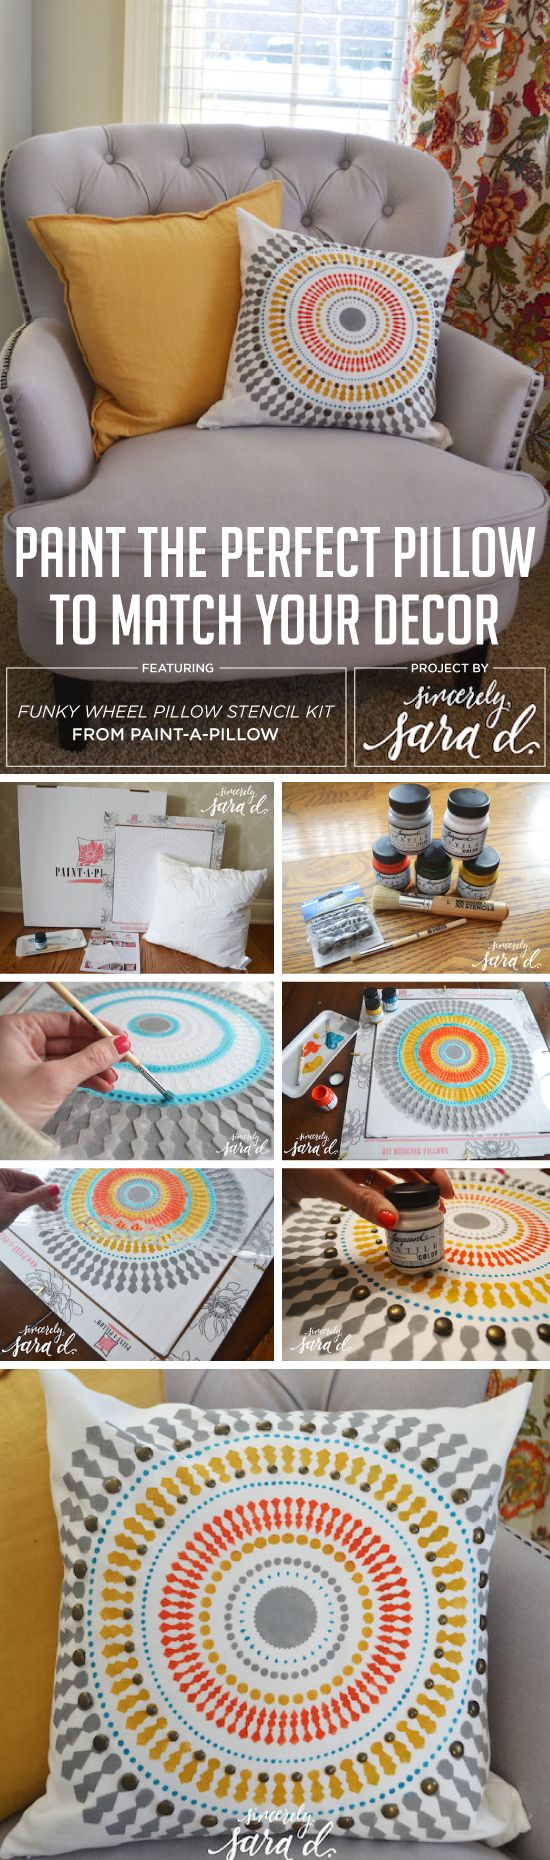 Cutting Edge Stencils shares how to easily create DIY accent pillows using the Funky Wheel Paint-A-Pillow kit. http://paintapillow.com/index.php/funky-wheel-paint-a-pillow-kit.html